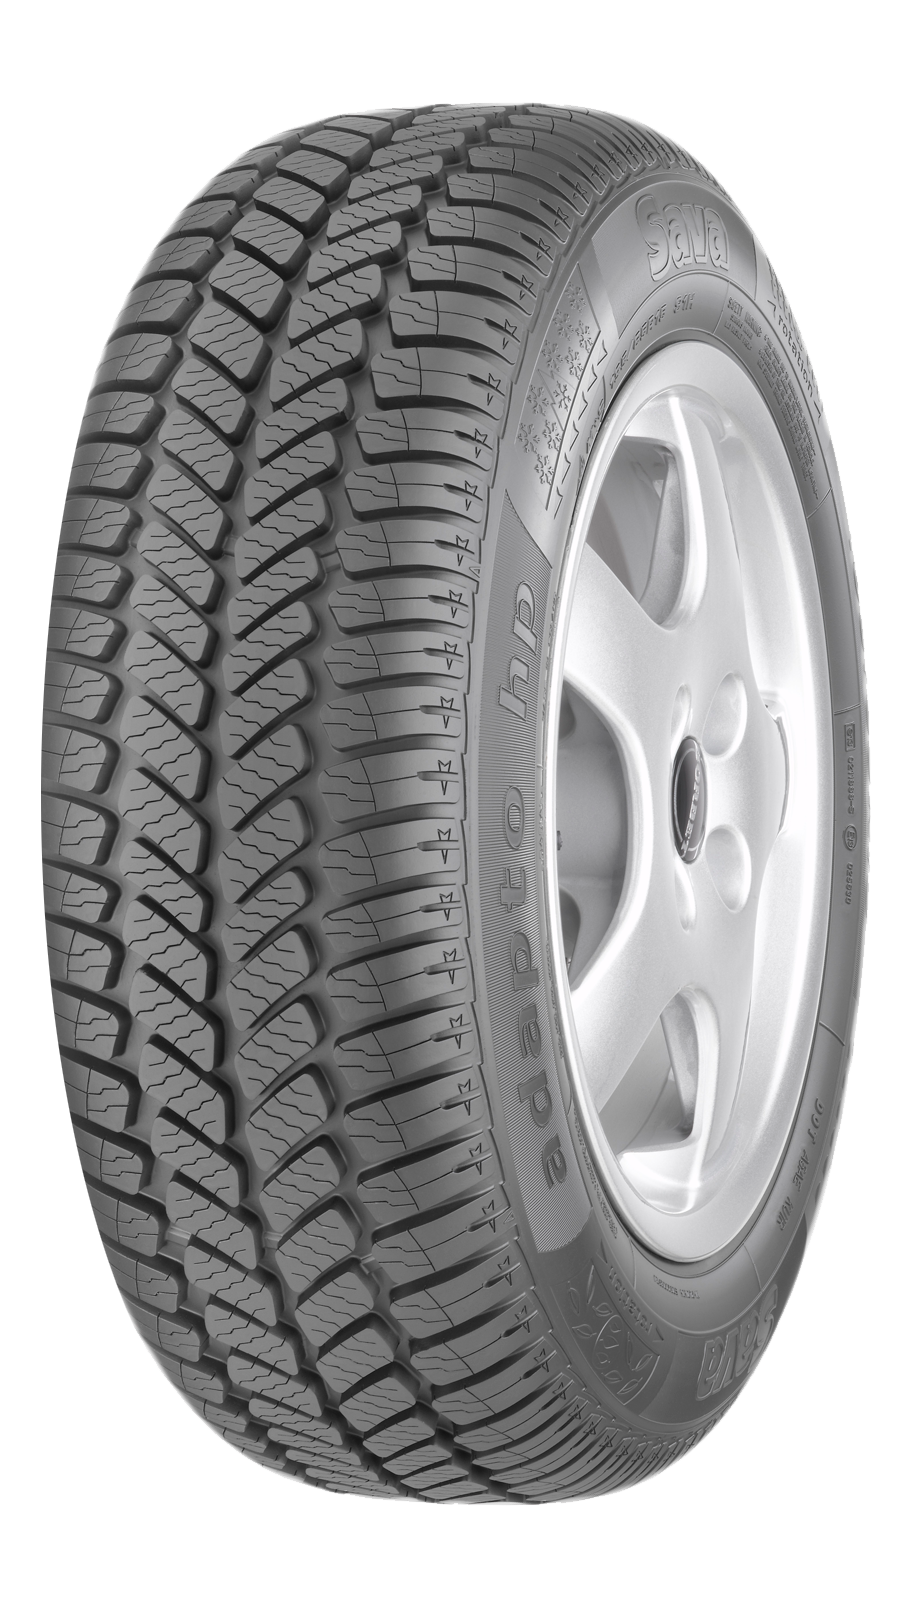 185/65R15 88H, Sava, ADAPTO HP